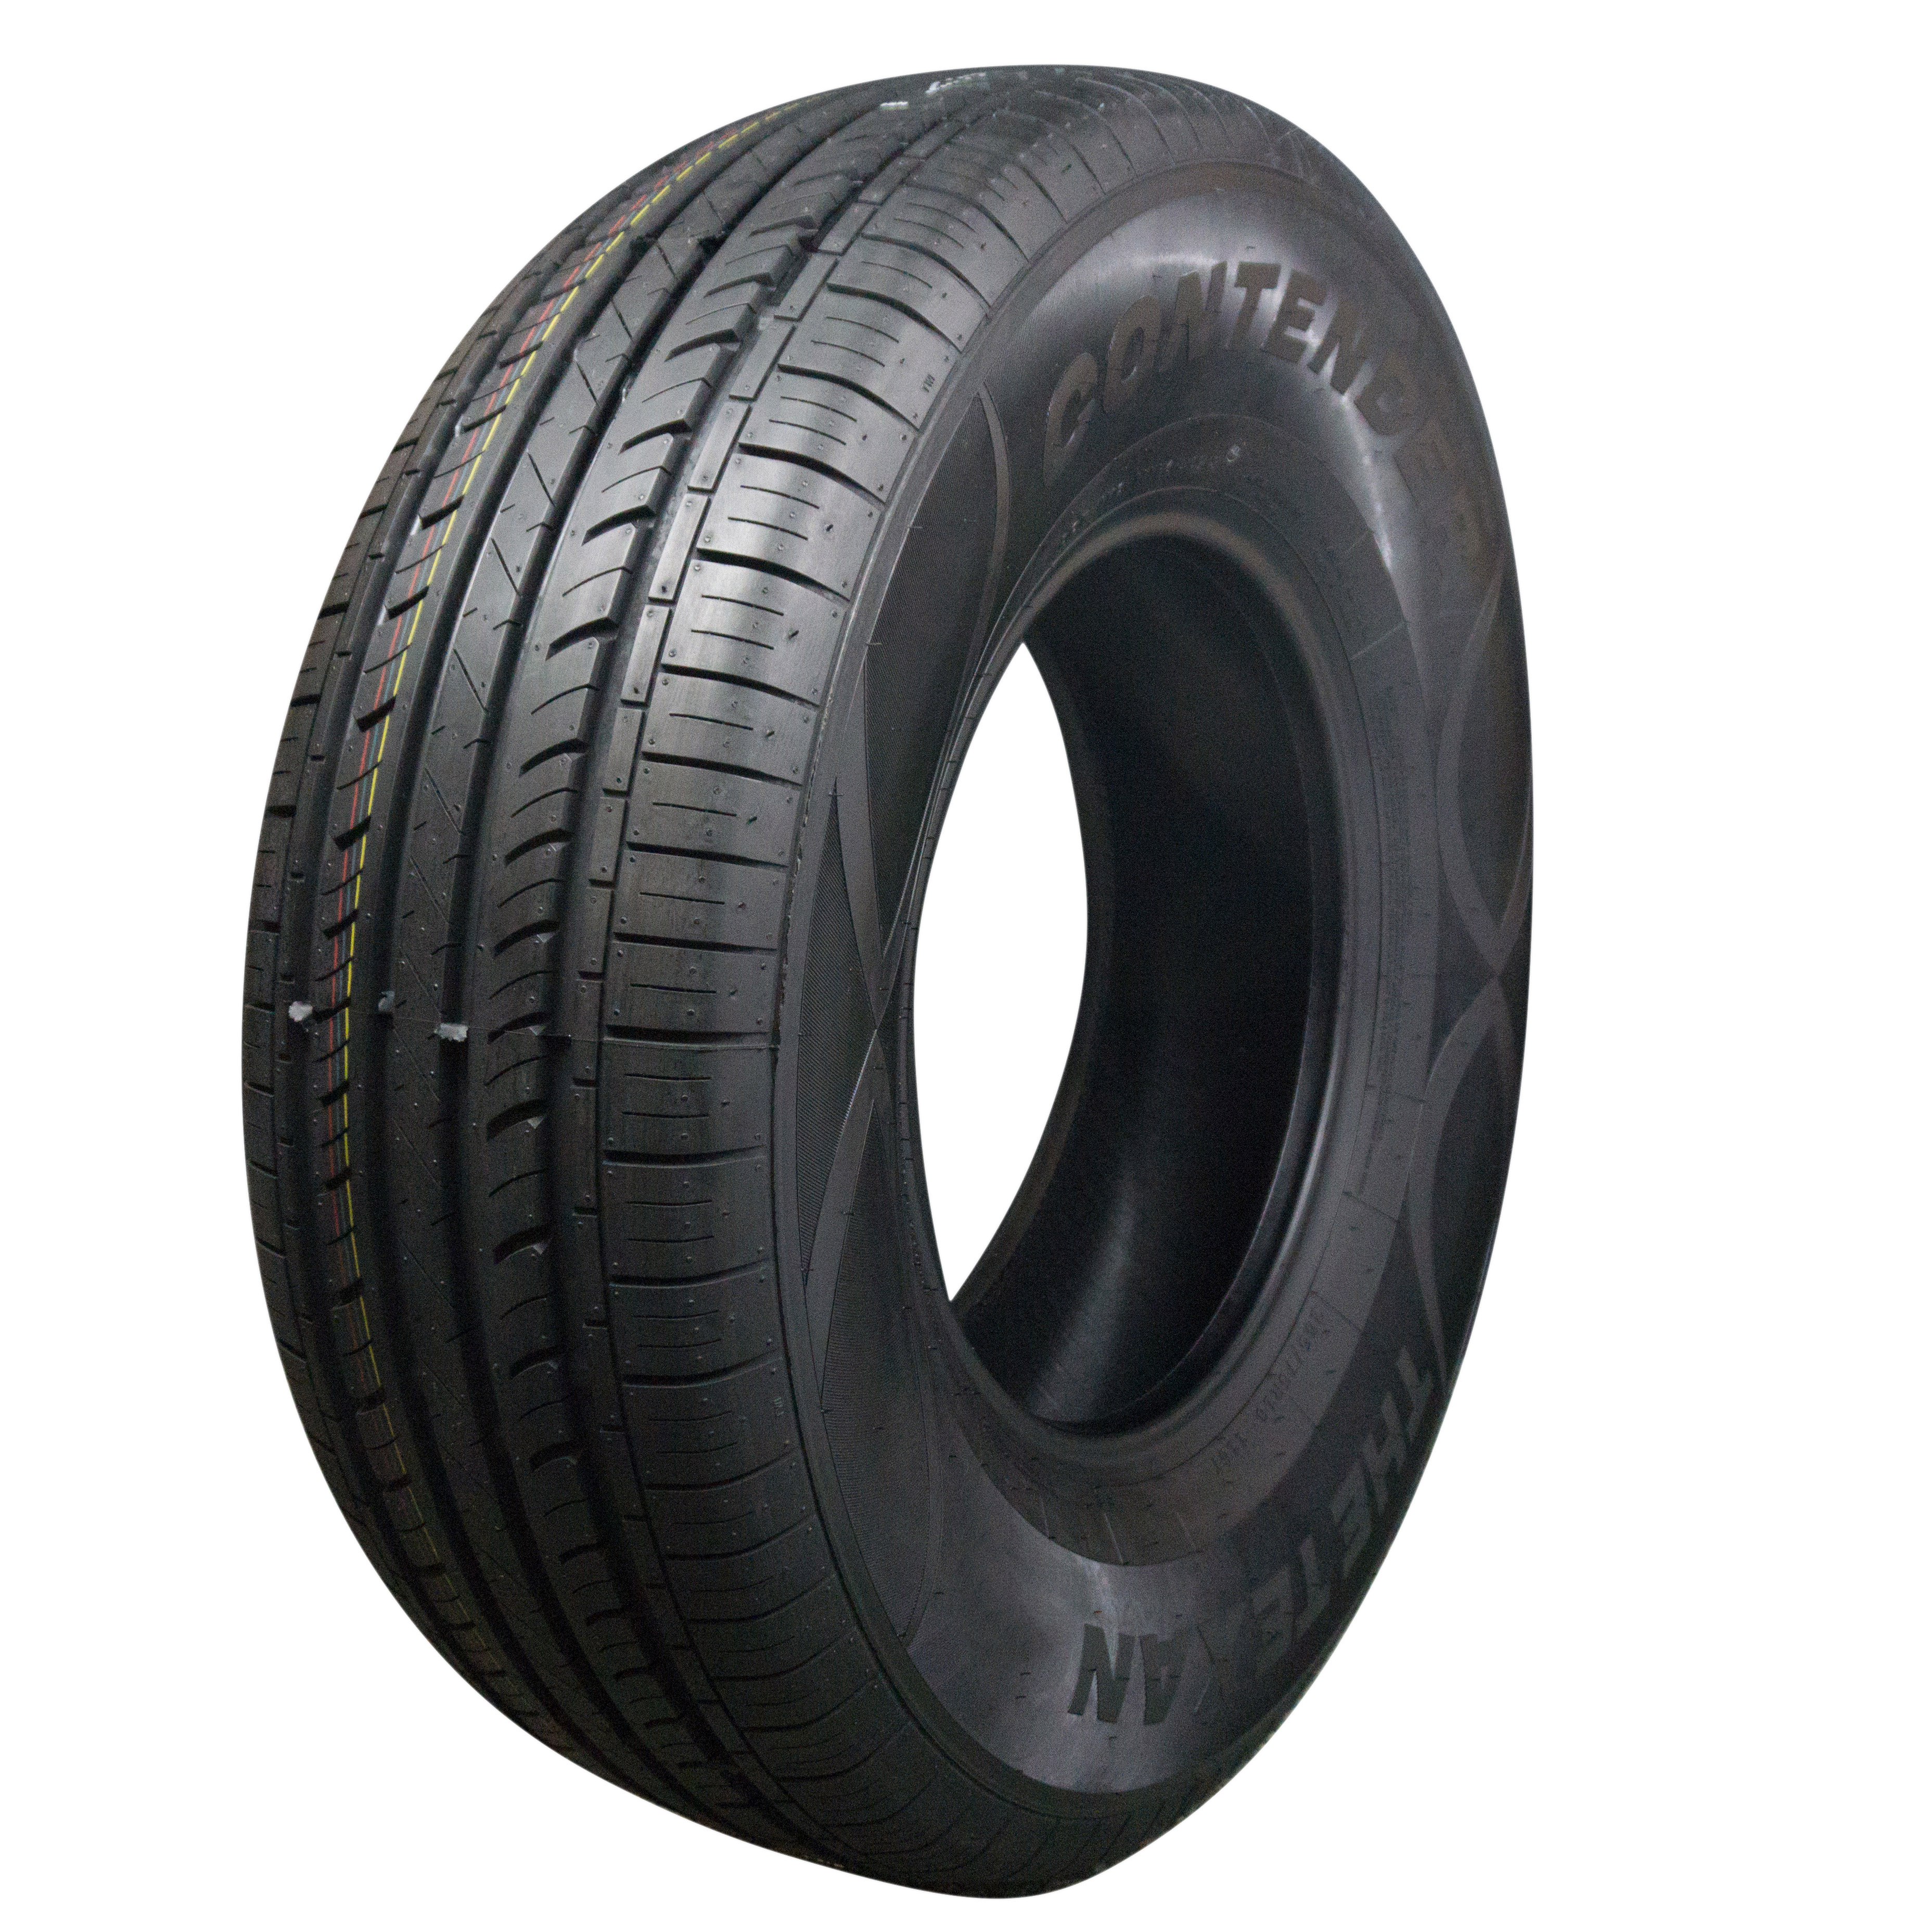 The Texan Contender H/T Radial Tire – LT265/75R16 123/120R